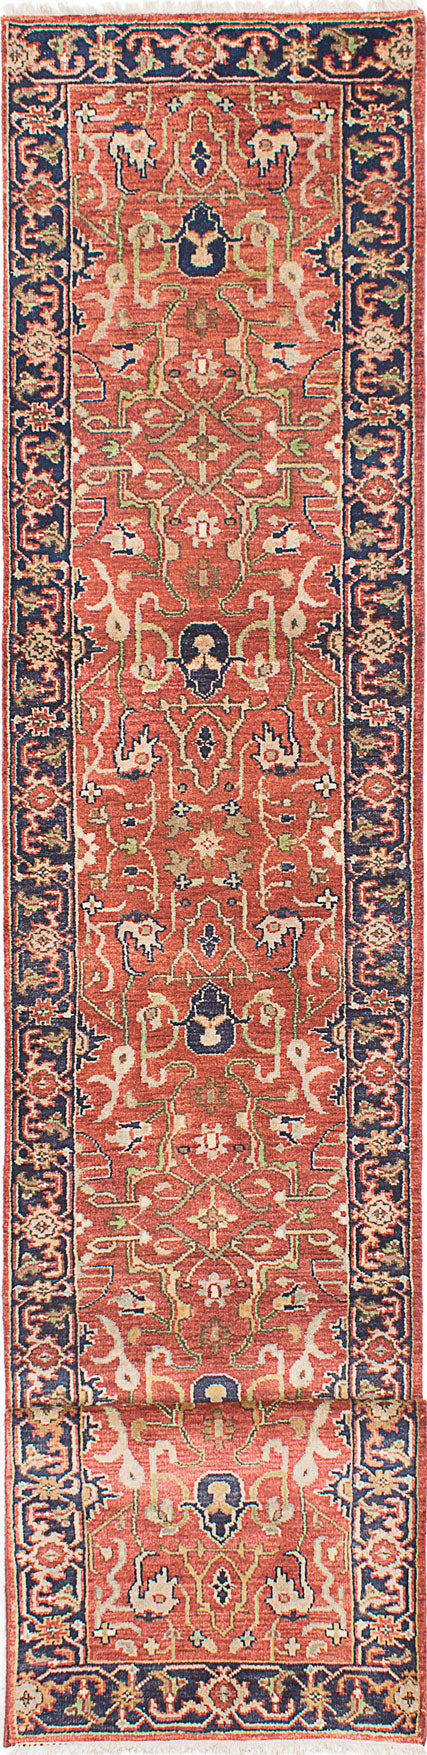 "Hand-knotted Indian Floral  Traditional Serapi-Heritage Runner rug  Dark Copper 2'8 x 16'0"" """